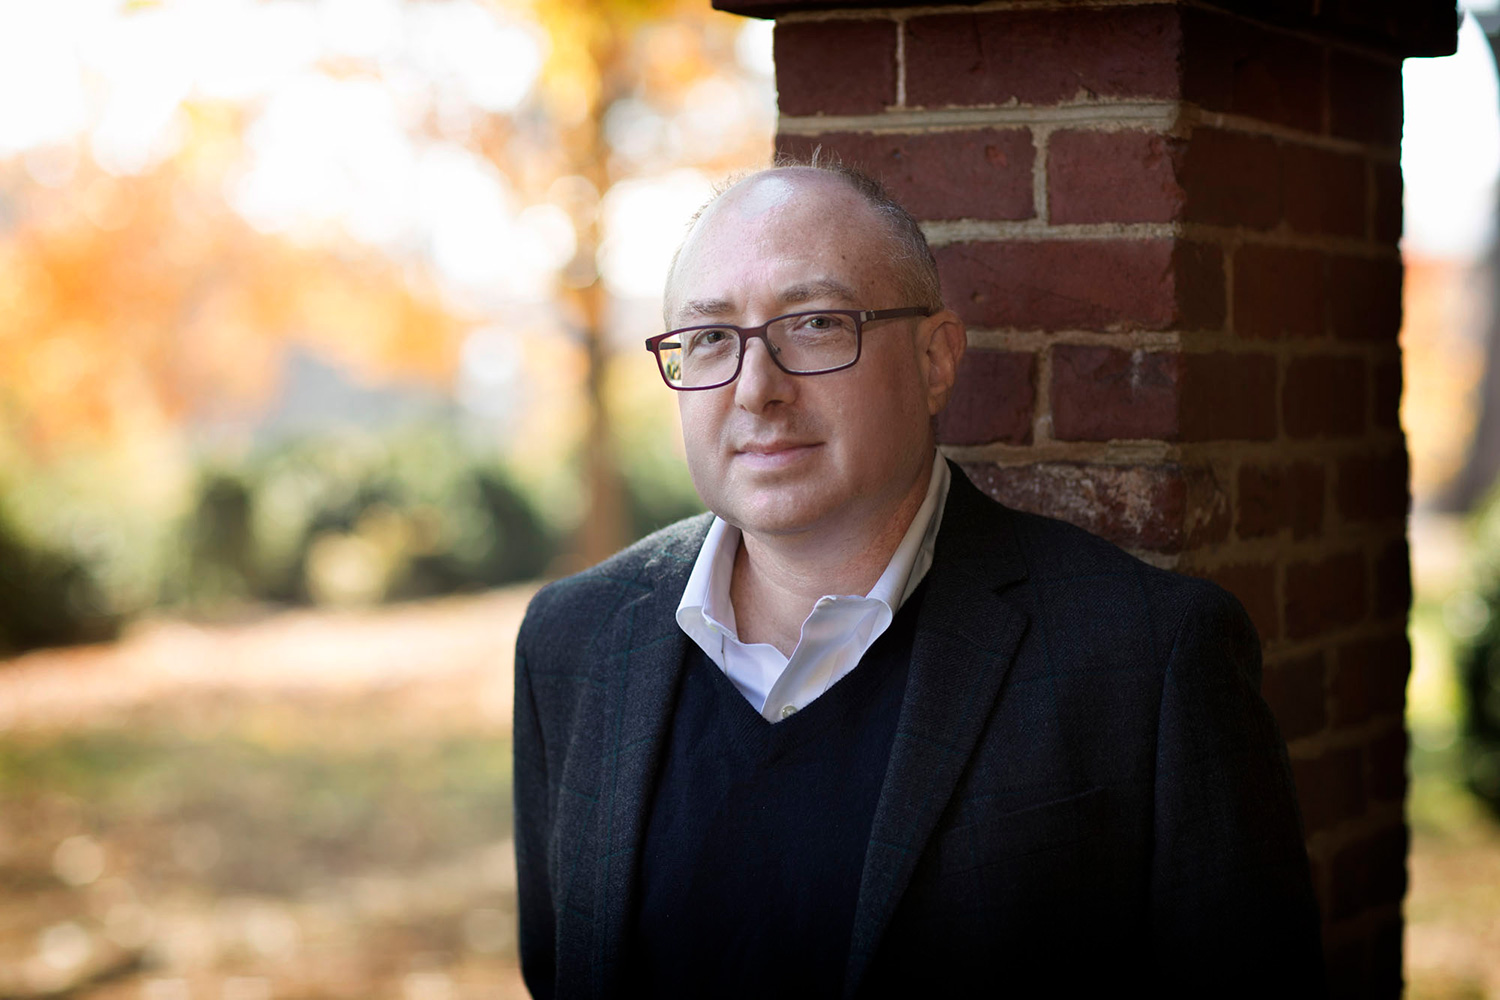 Jeff Olick said German leaders have used different themes in talking about the Nazis and World War II. (Photo by Dan Addison, University Communications)